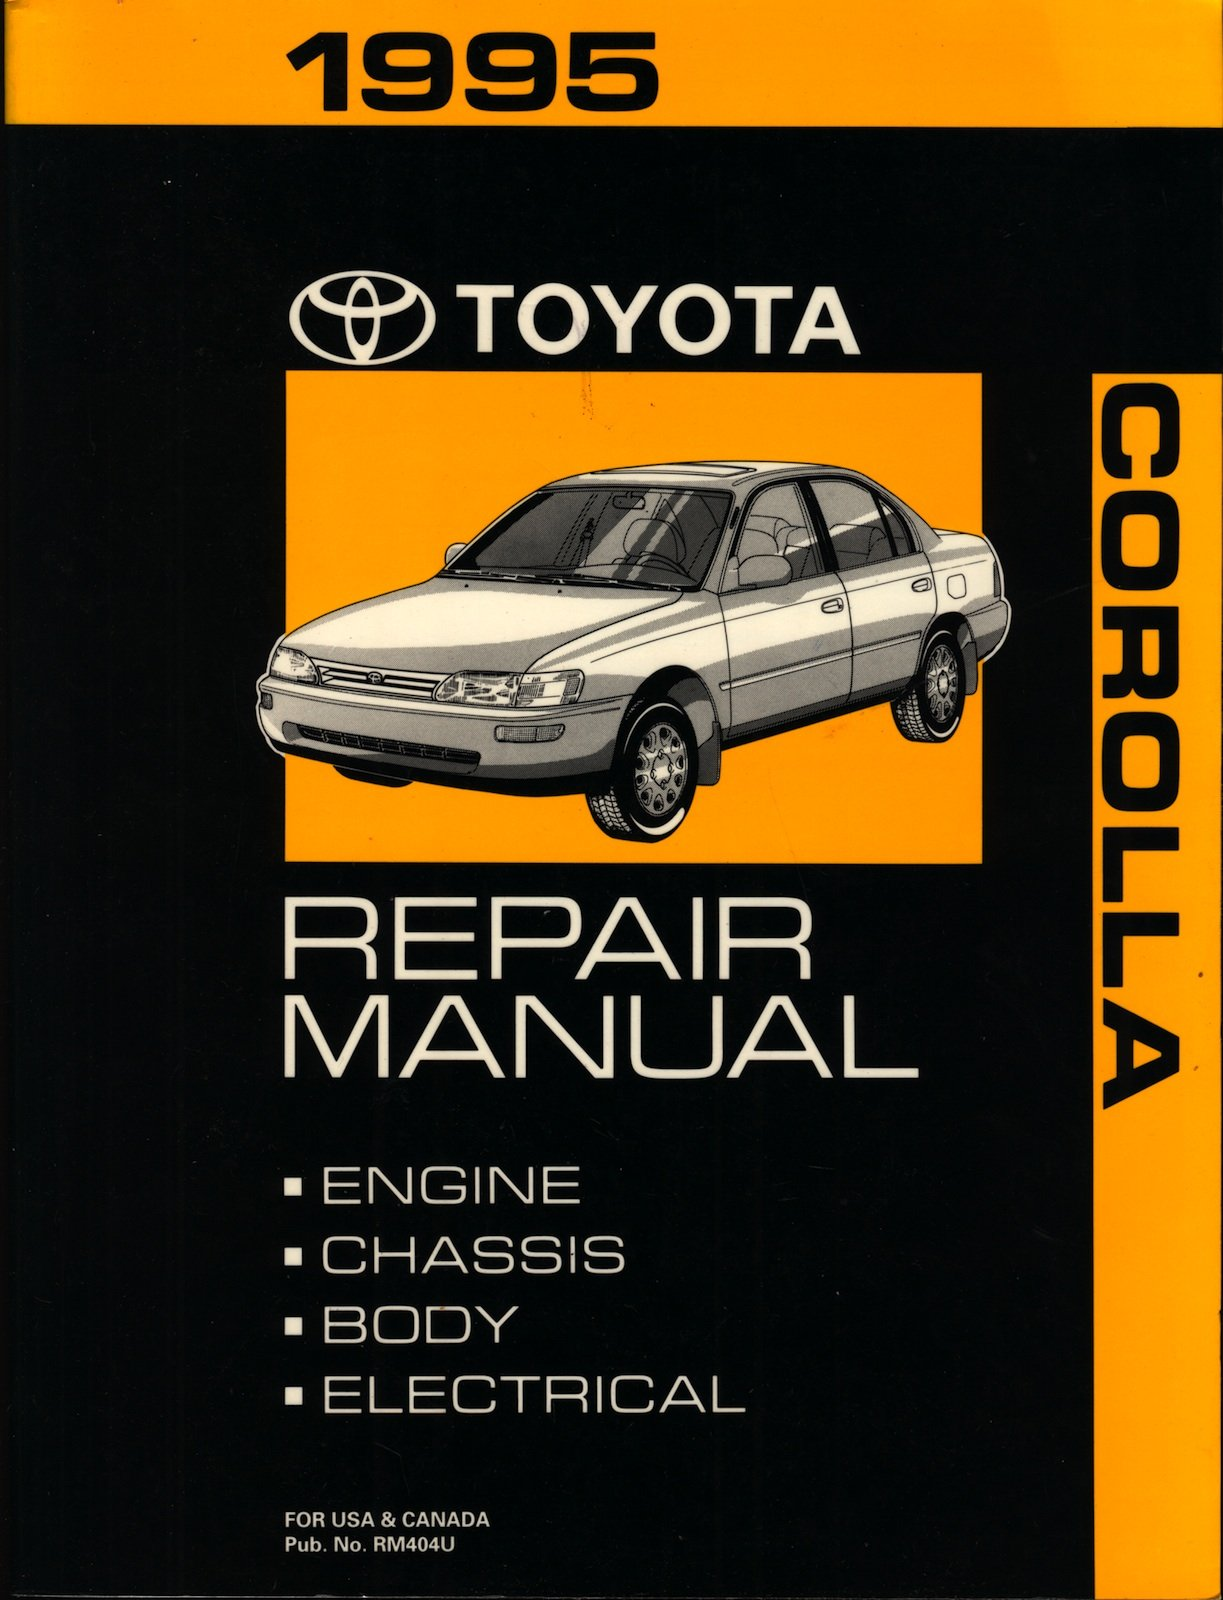 1995 toyota tercel ignition wiring diagram free download wiring 1995 toyota corolla repair manual toyota amazon com books 1995 toyota tercel ignition wiring diagram 26 1998 toyota camry wiring schematic ignition switch asfbconference2016